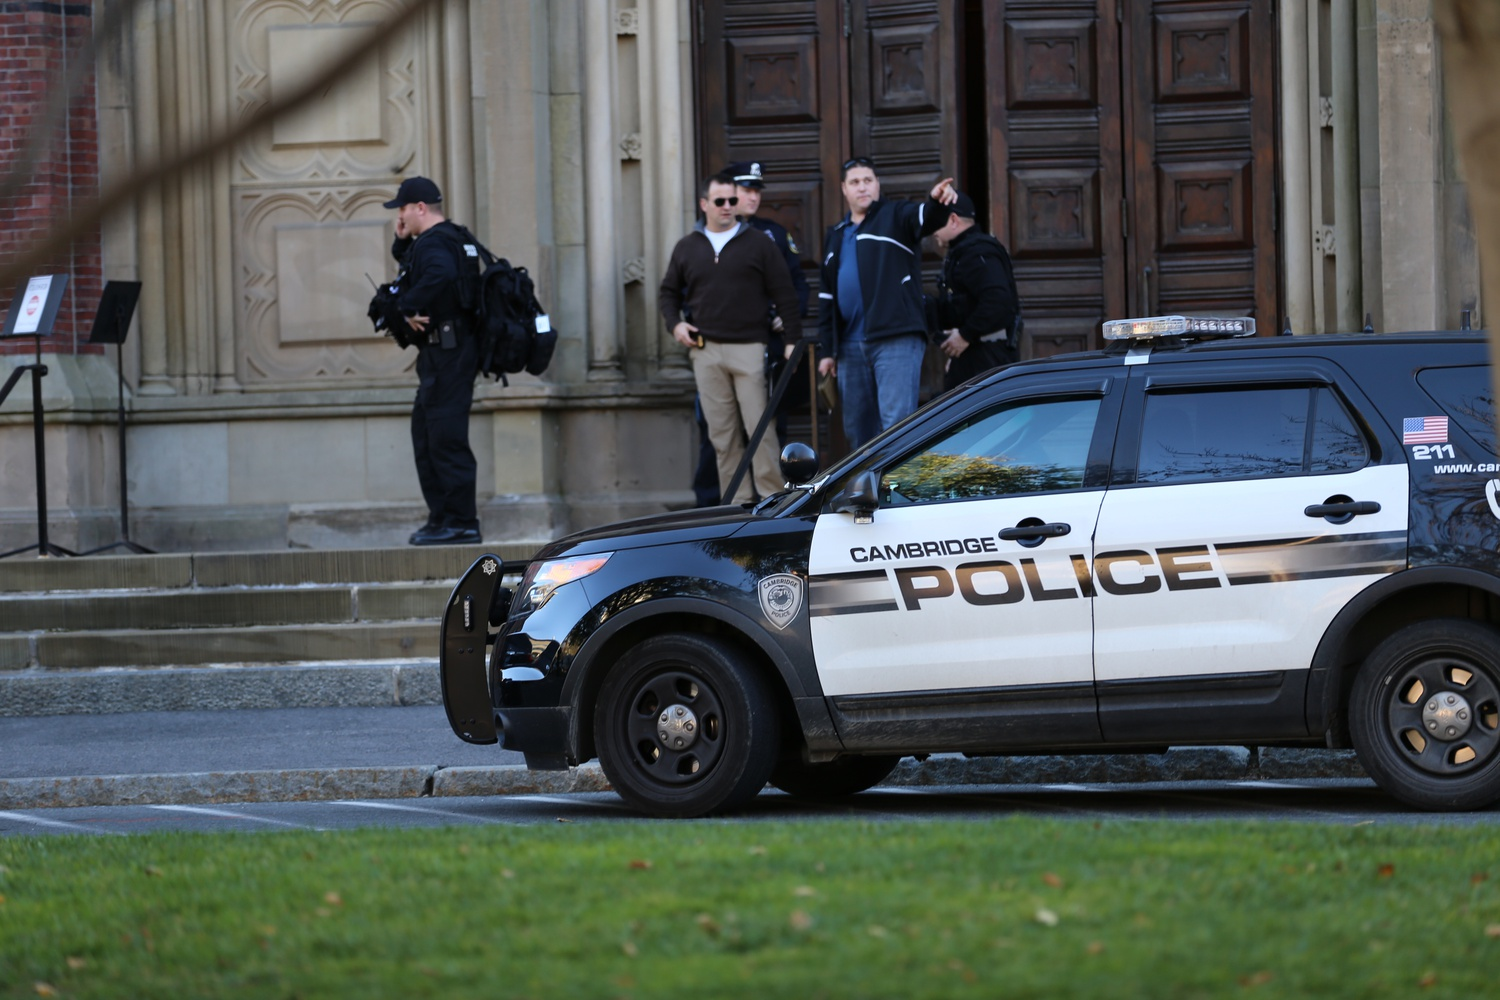 The Cambridge Police Department announced Tuesday that it will reduce its arsenal of long guns and non-lethal weapons by 20 percent and 30 percent, respectively.